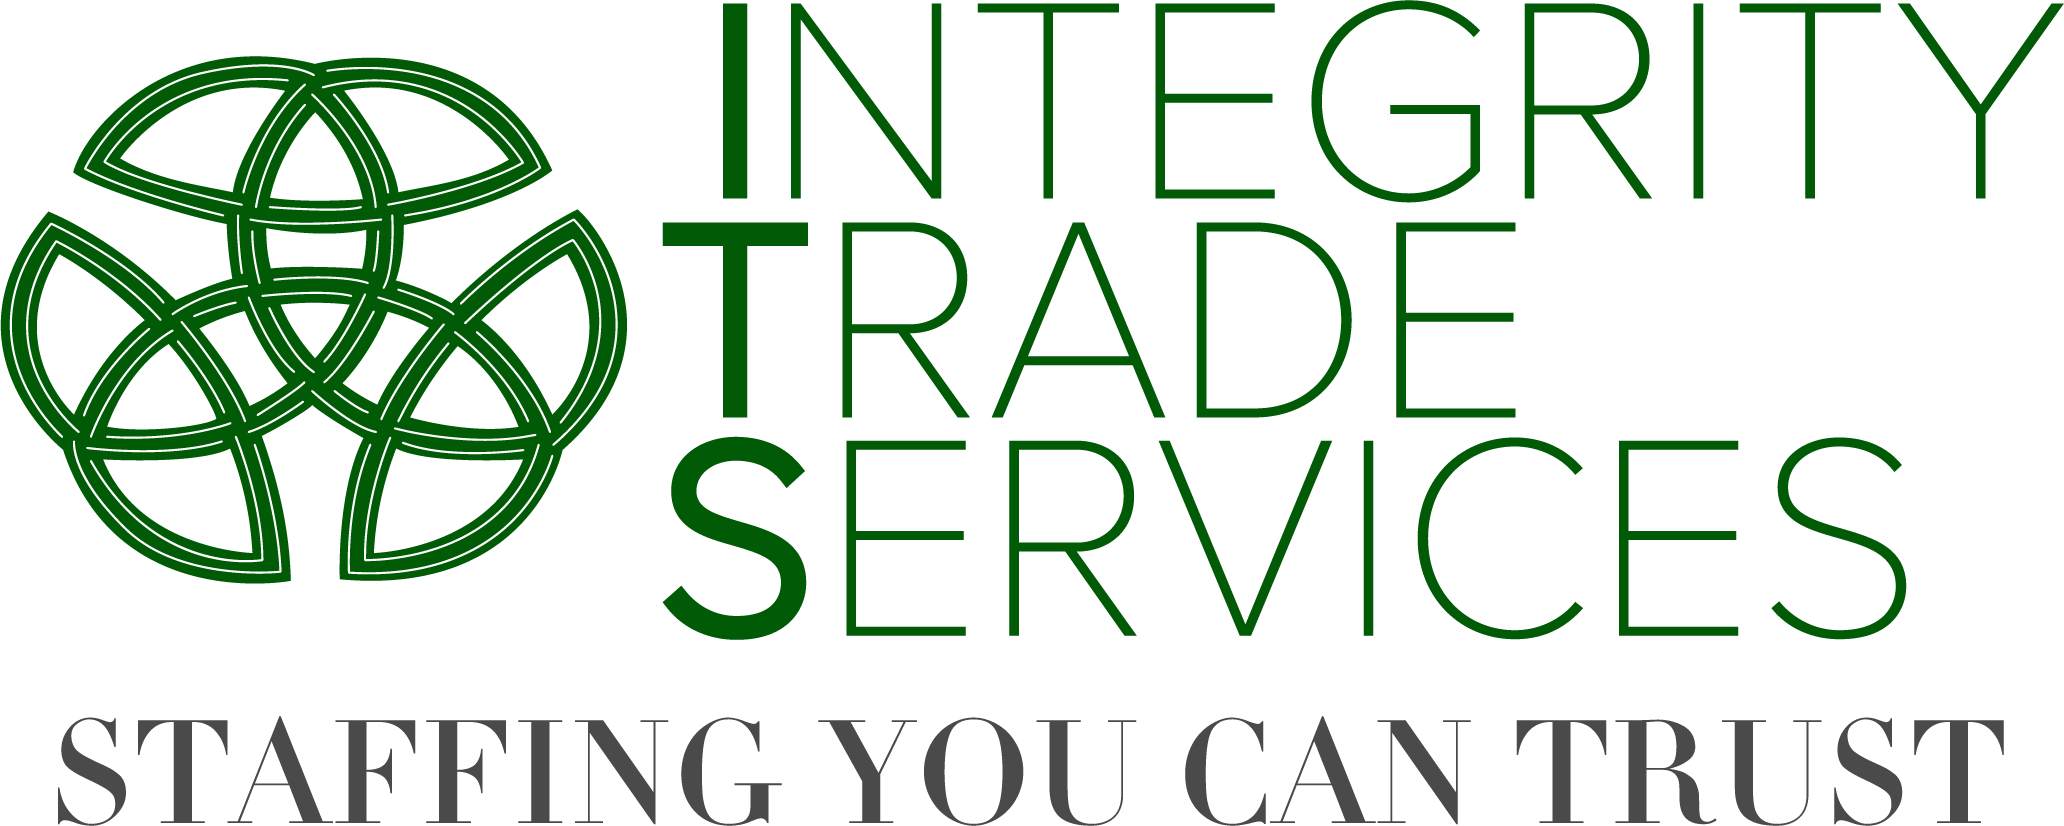 Integrity Trade Services